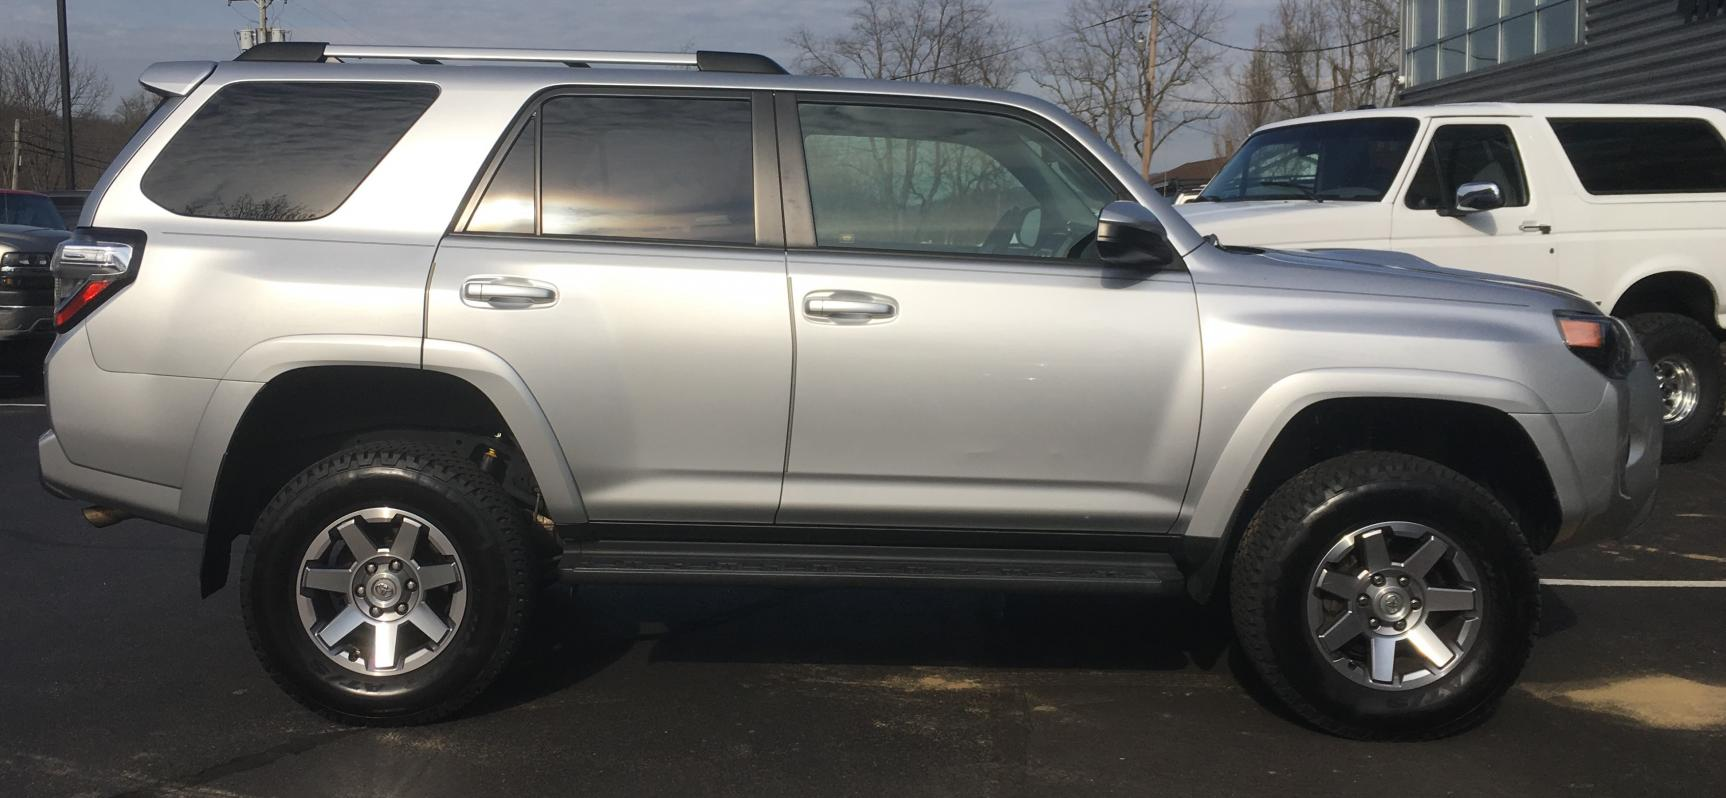 4Runner Picture Gallery (All Gens)-3inch-lift-arb-ome-pass-side-04-11-19-jpg